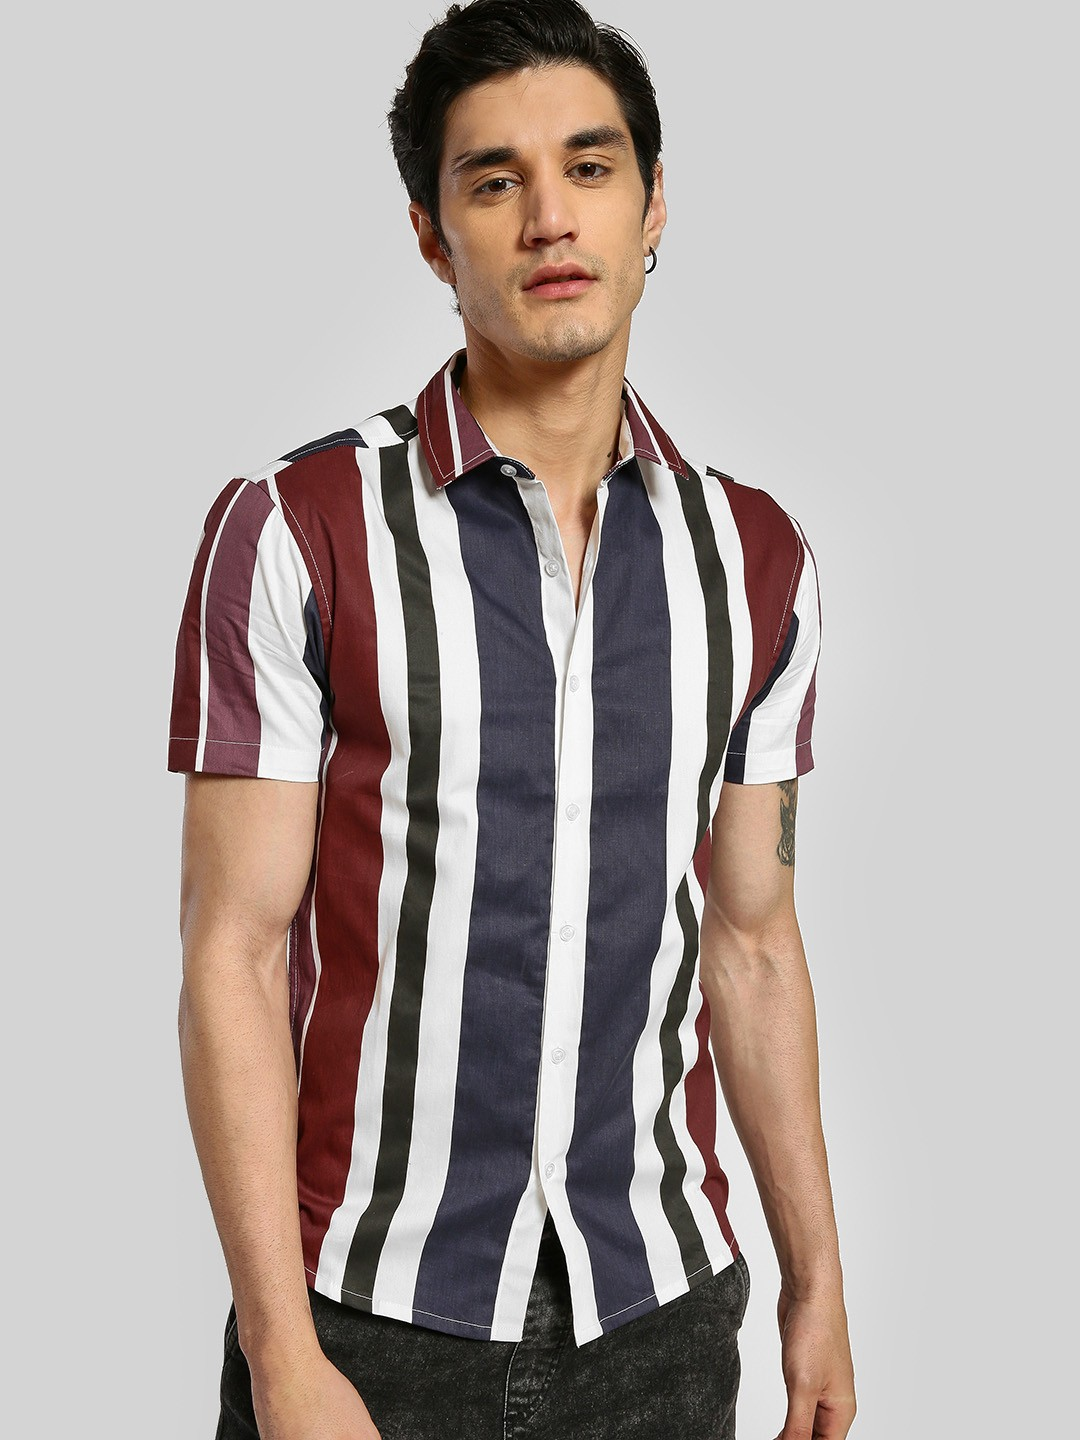 TRUE RUG Multi Colour Block Vertical Stripe Shirt 1